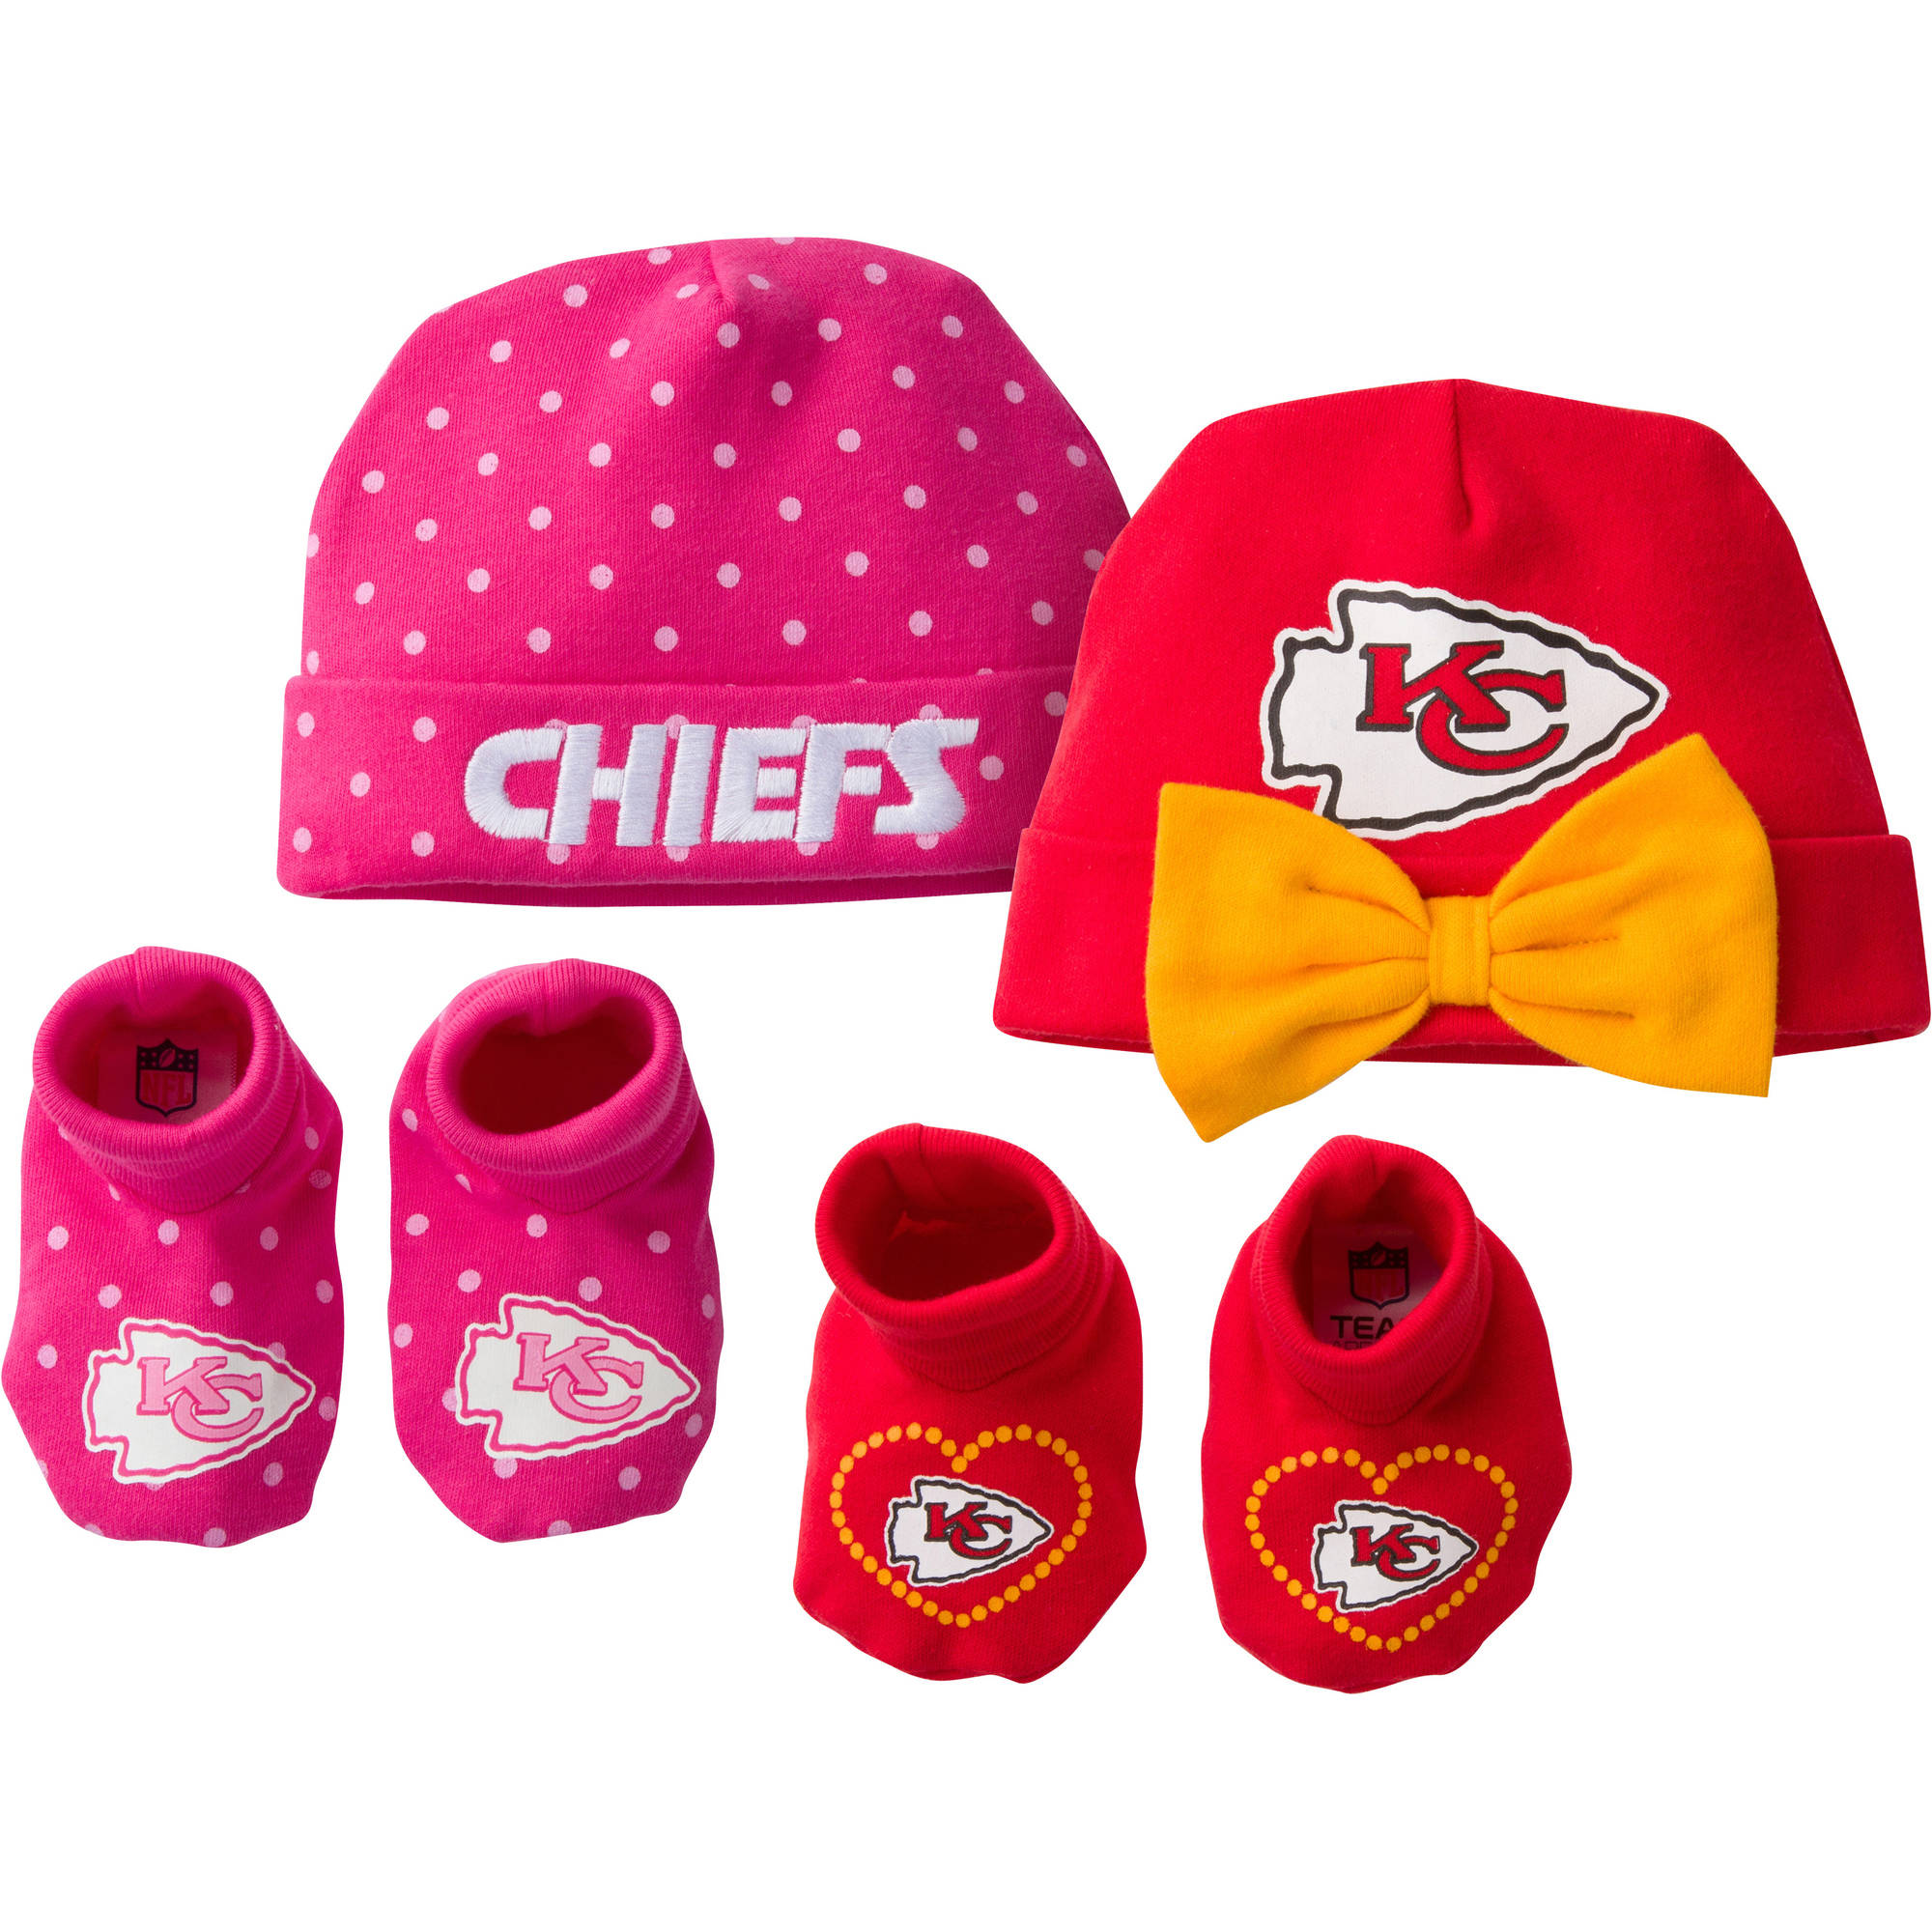 NFL Kansas City Chiefs Baby Girls Accessory Set, 2 Caps and 2 Booties, 4-Piece